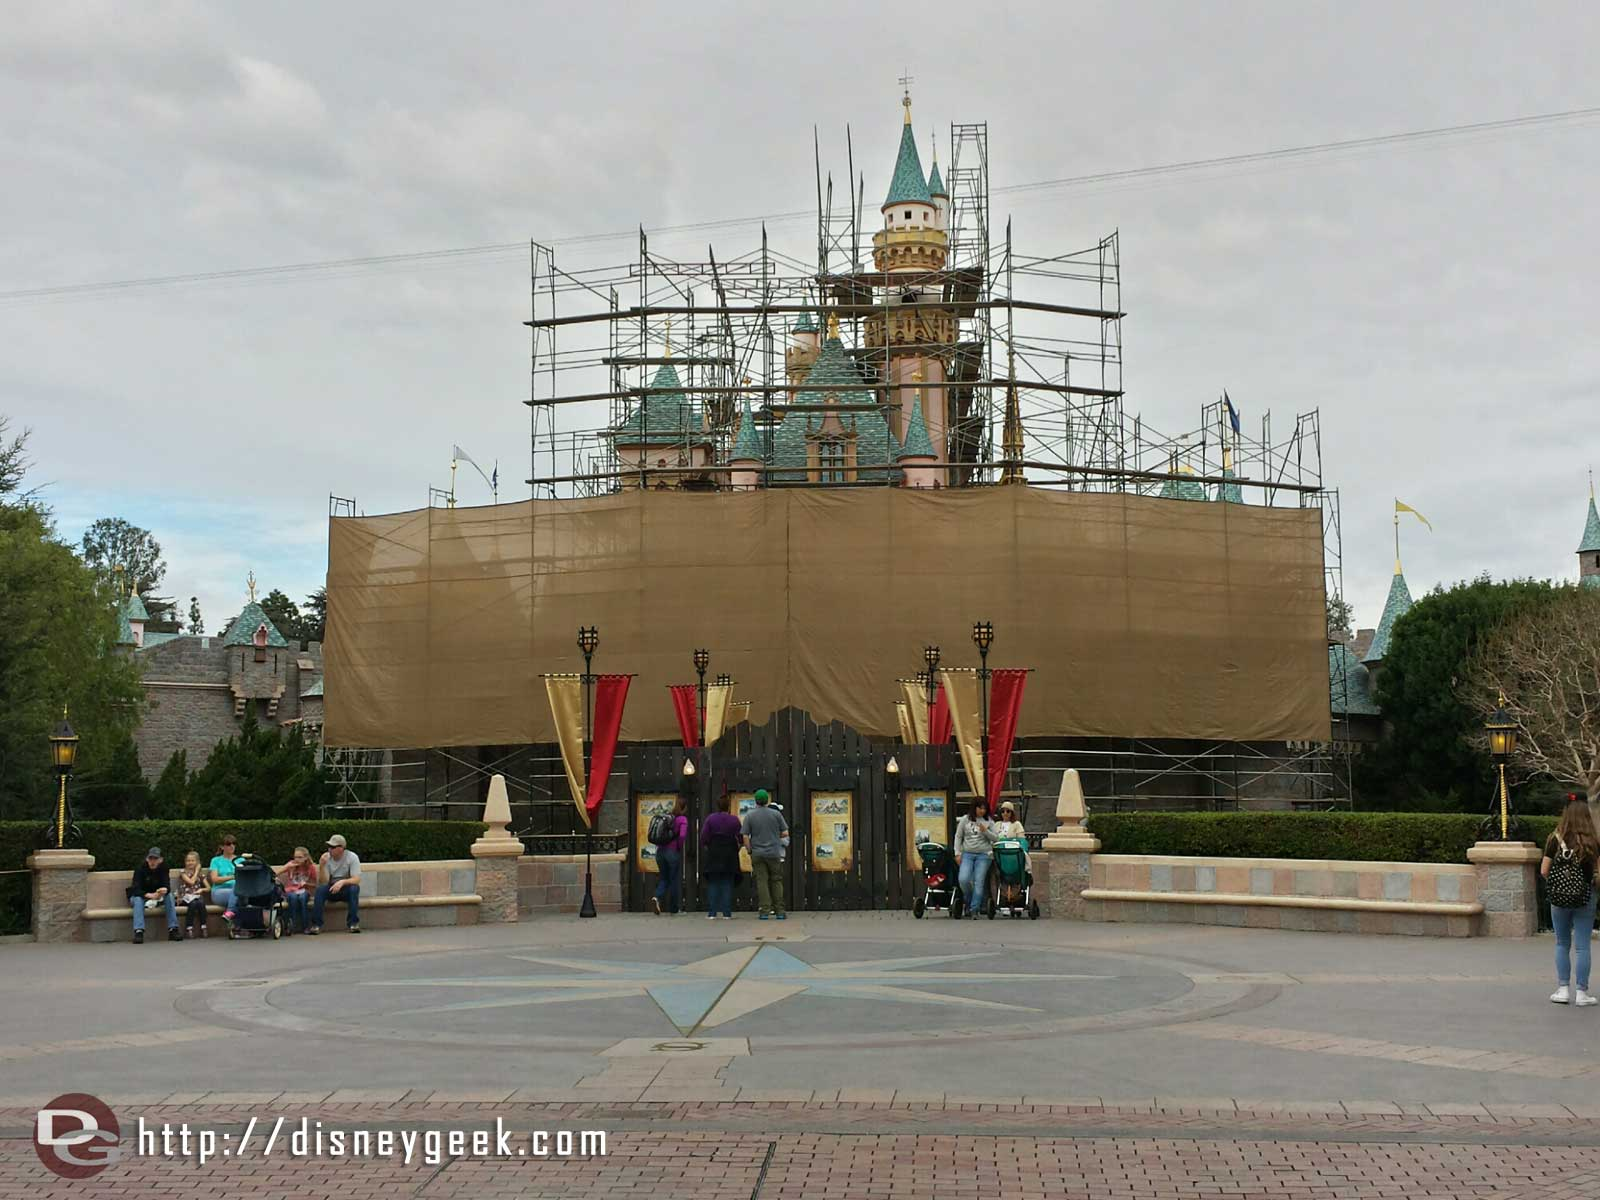 Sleeping Beauty Castle has scaffolding up as it is prepared for #Disneyland60